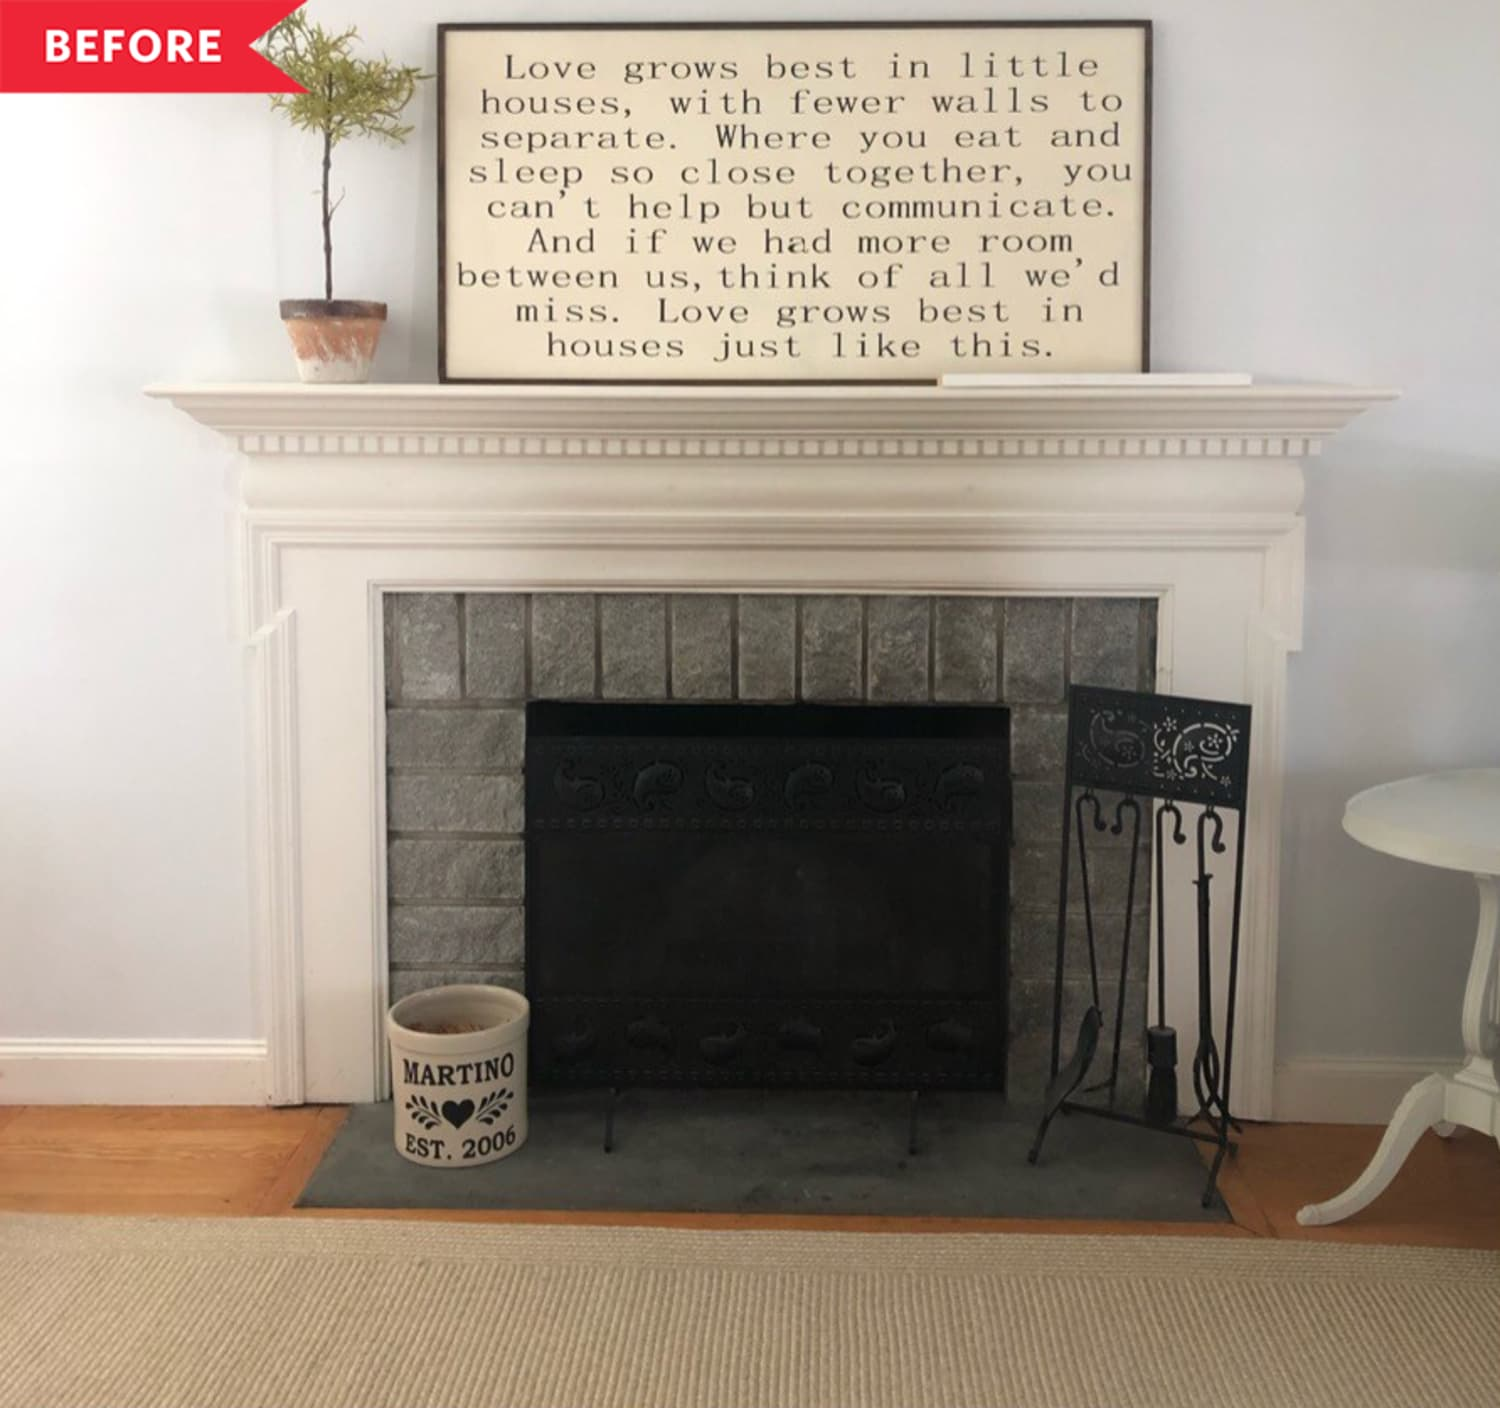 8 Fireplace Makeovers That'll Make You Want to Curl Up with a Good Book